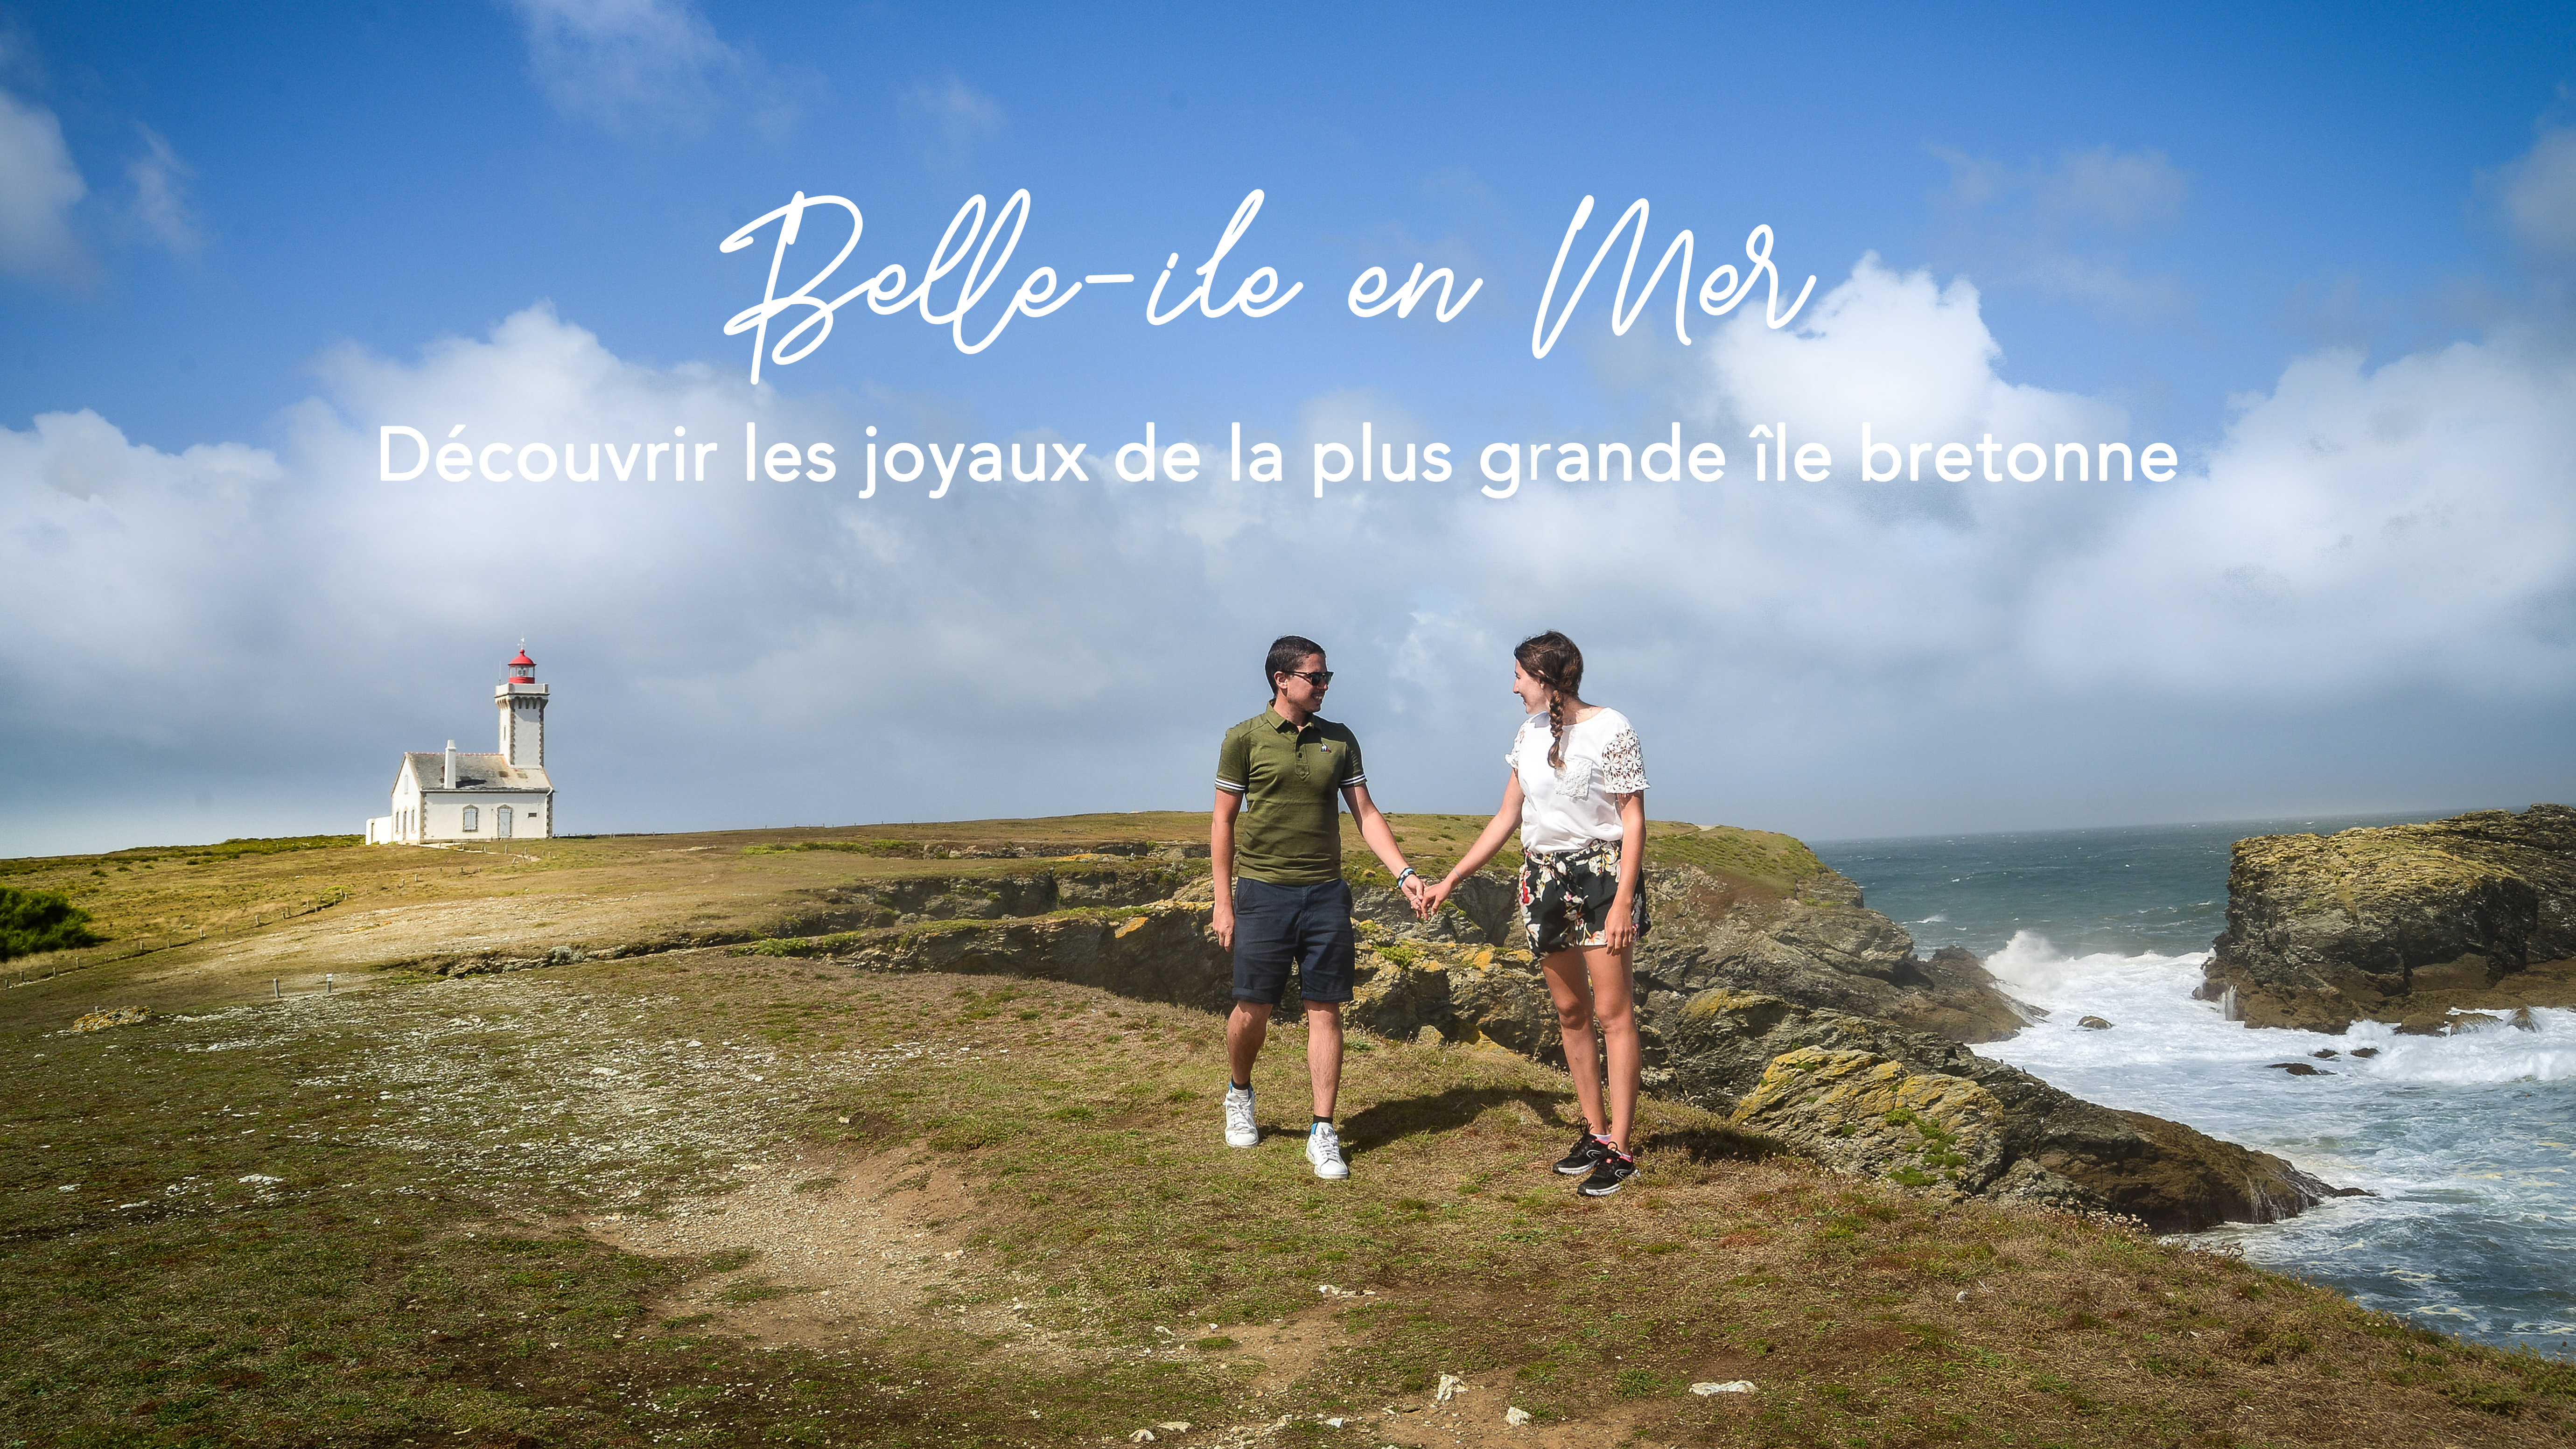 Un week-end à Belle – Île